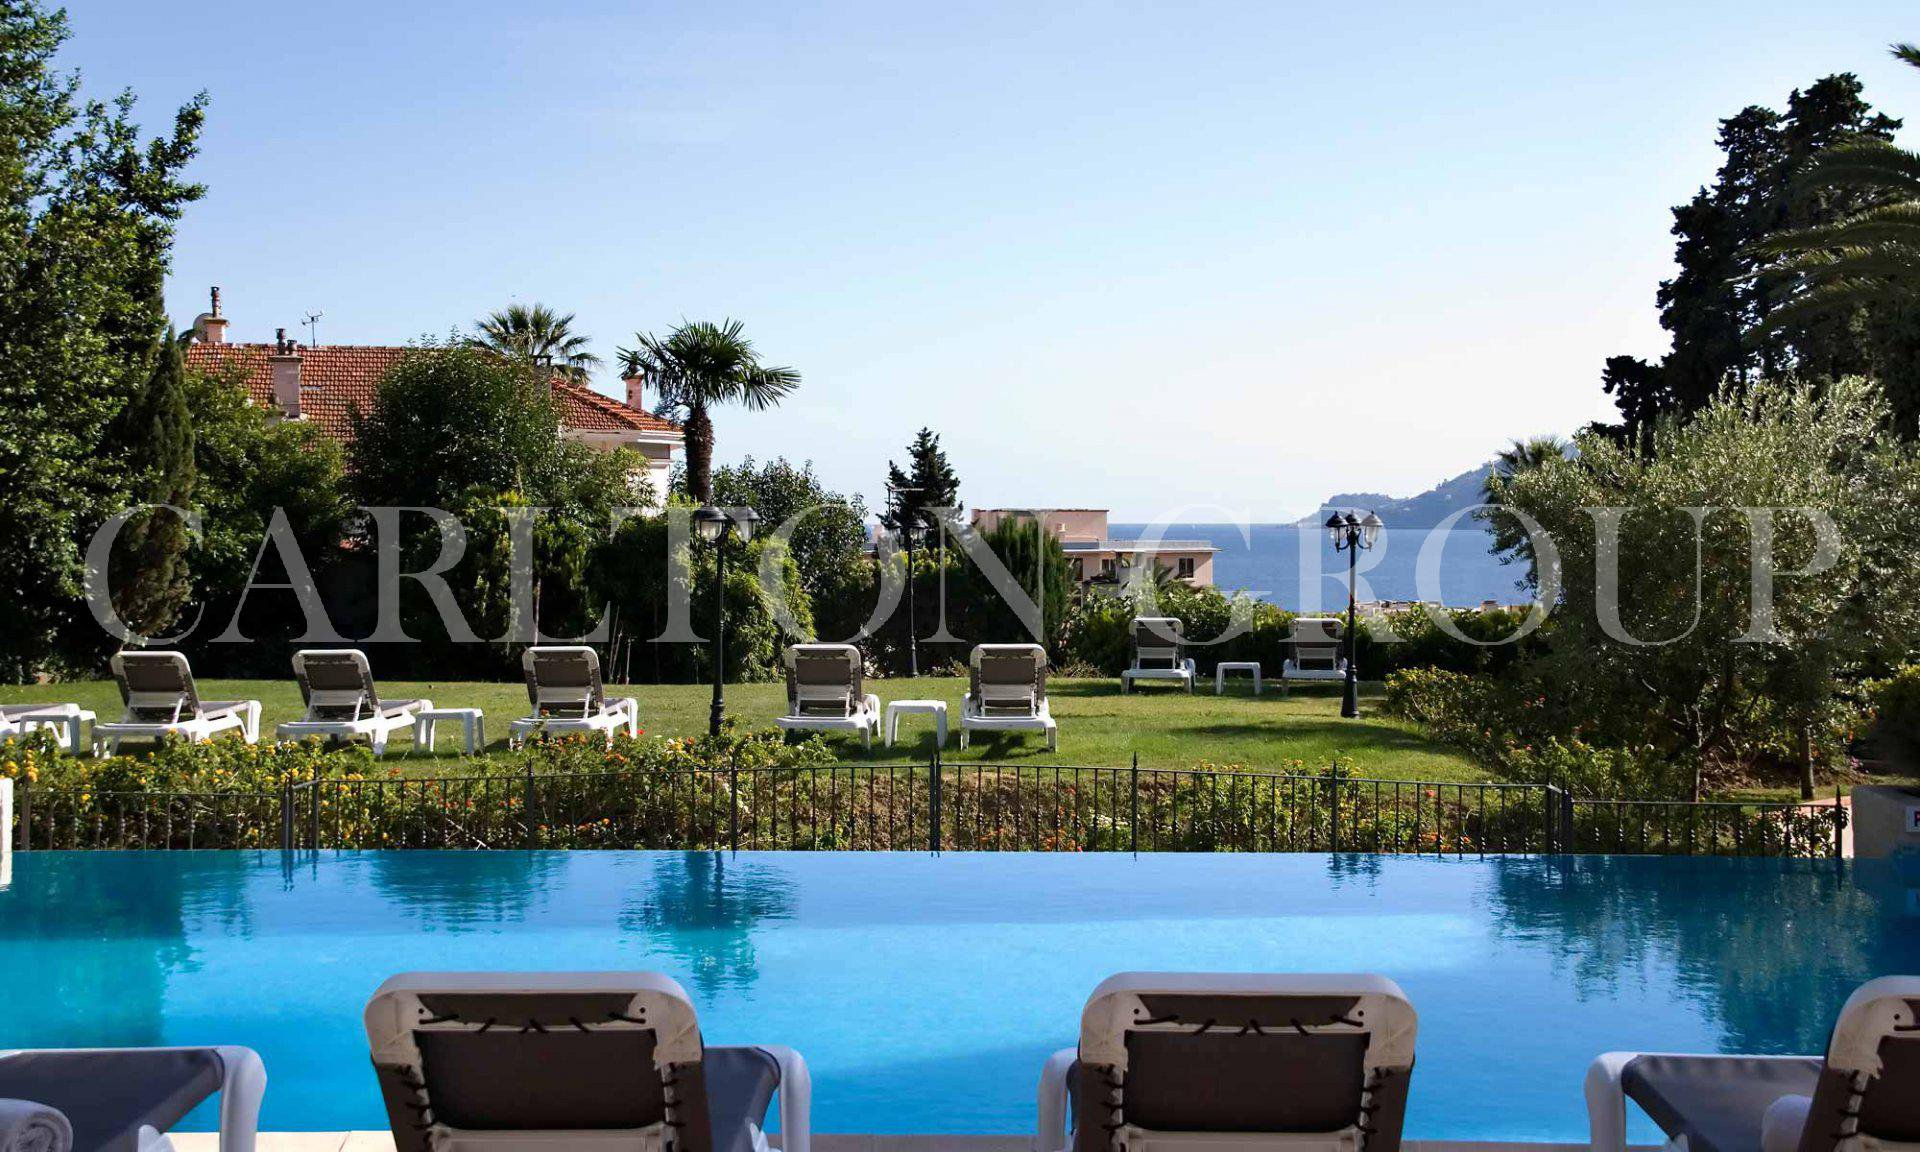 Superb charming hotel**** overlooking Cannes Bay